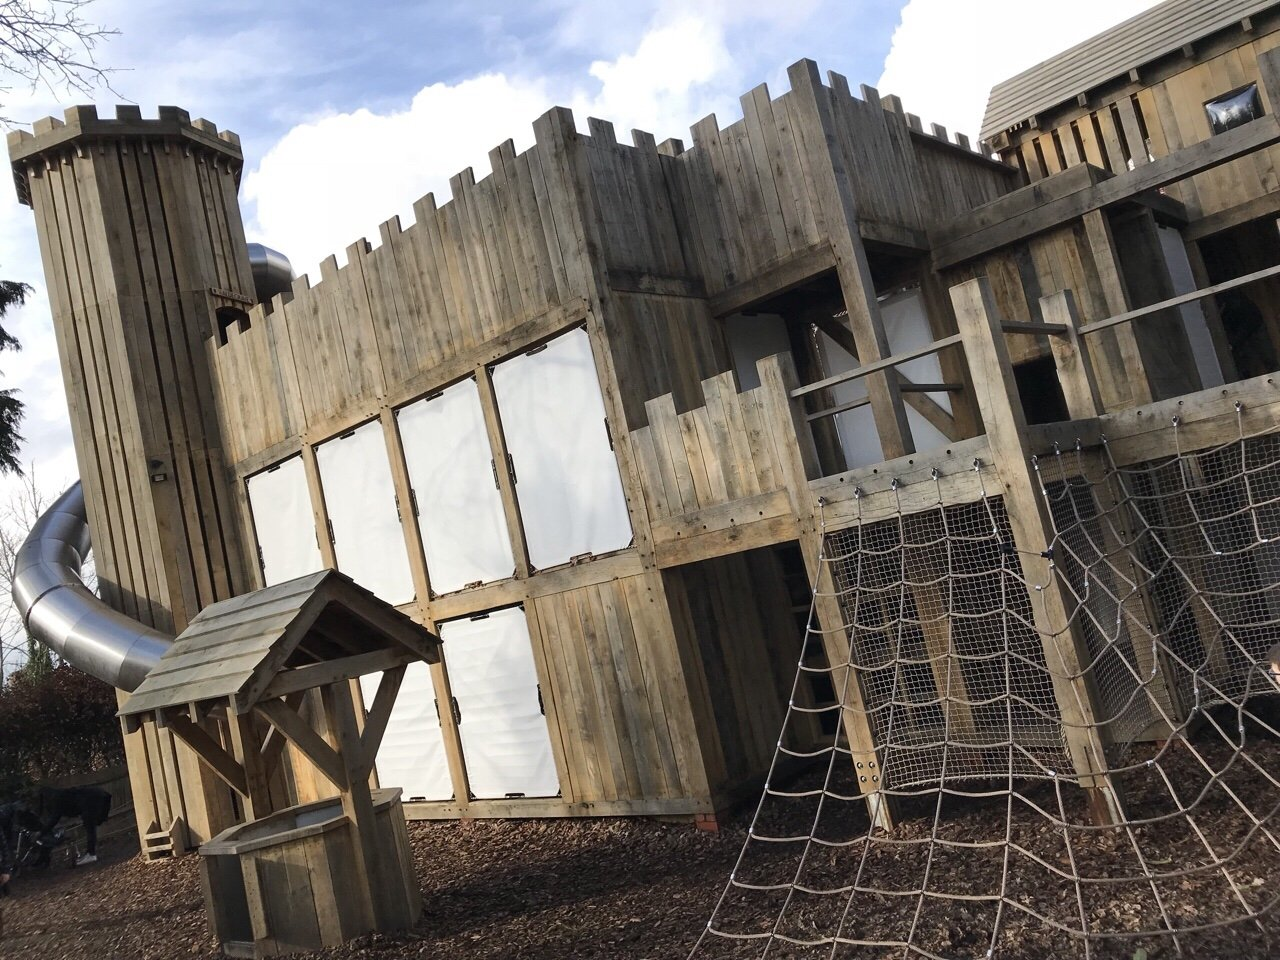 Tudor Towers Adventure Playground at Hever Castle